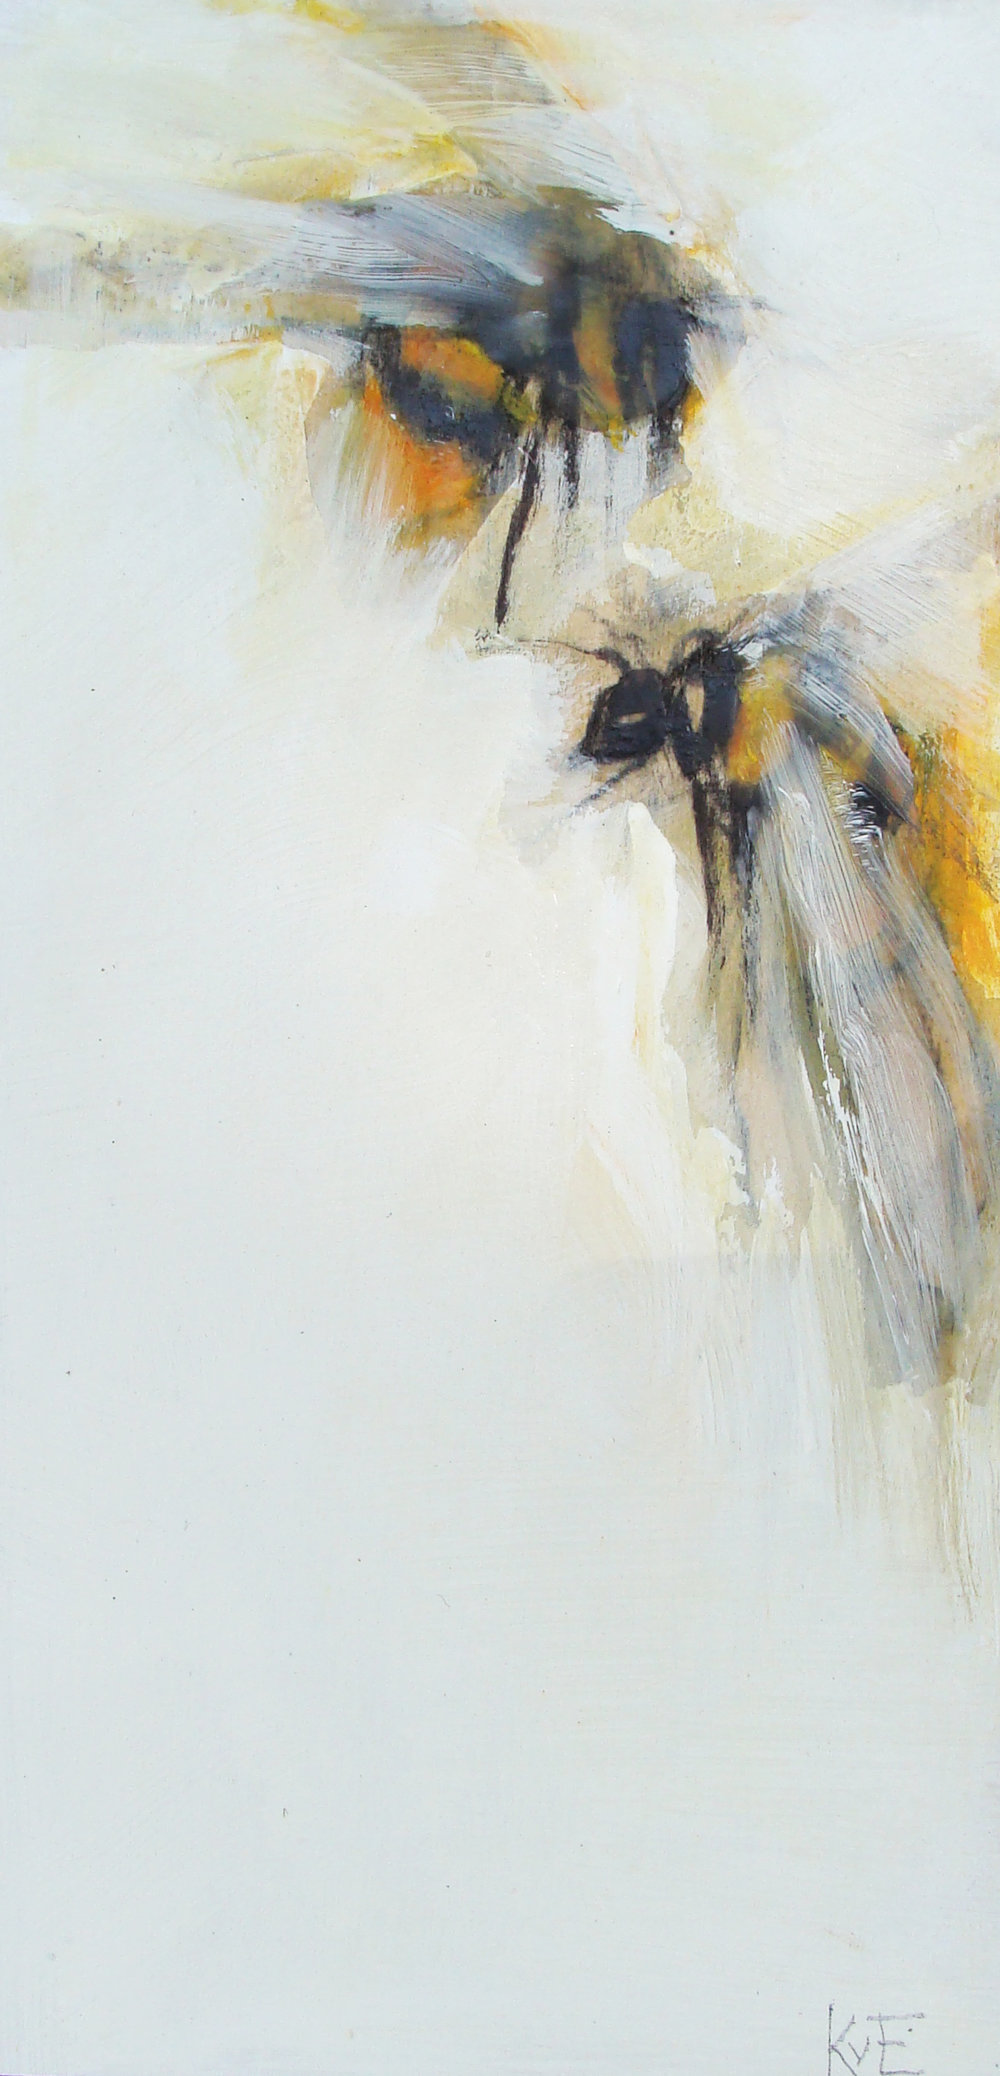 """Tiny's bee 3 - 12x6"""", oil, mixed media on panel, 2017, SOLD"""